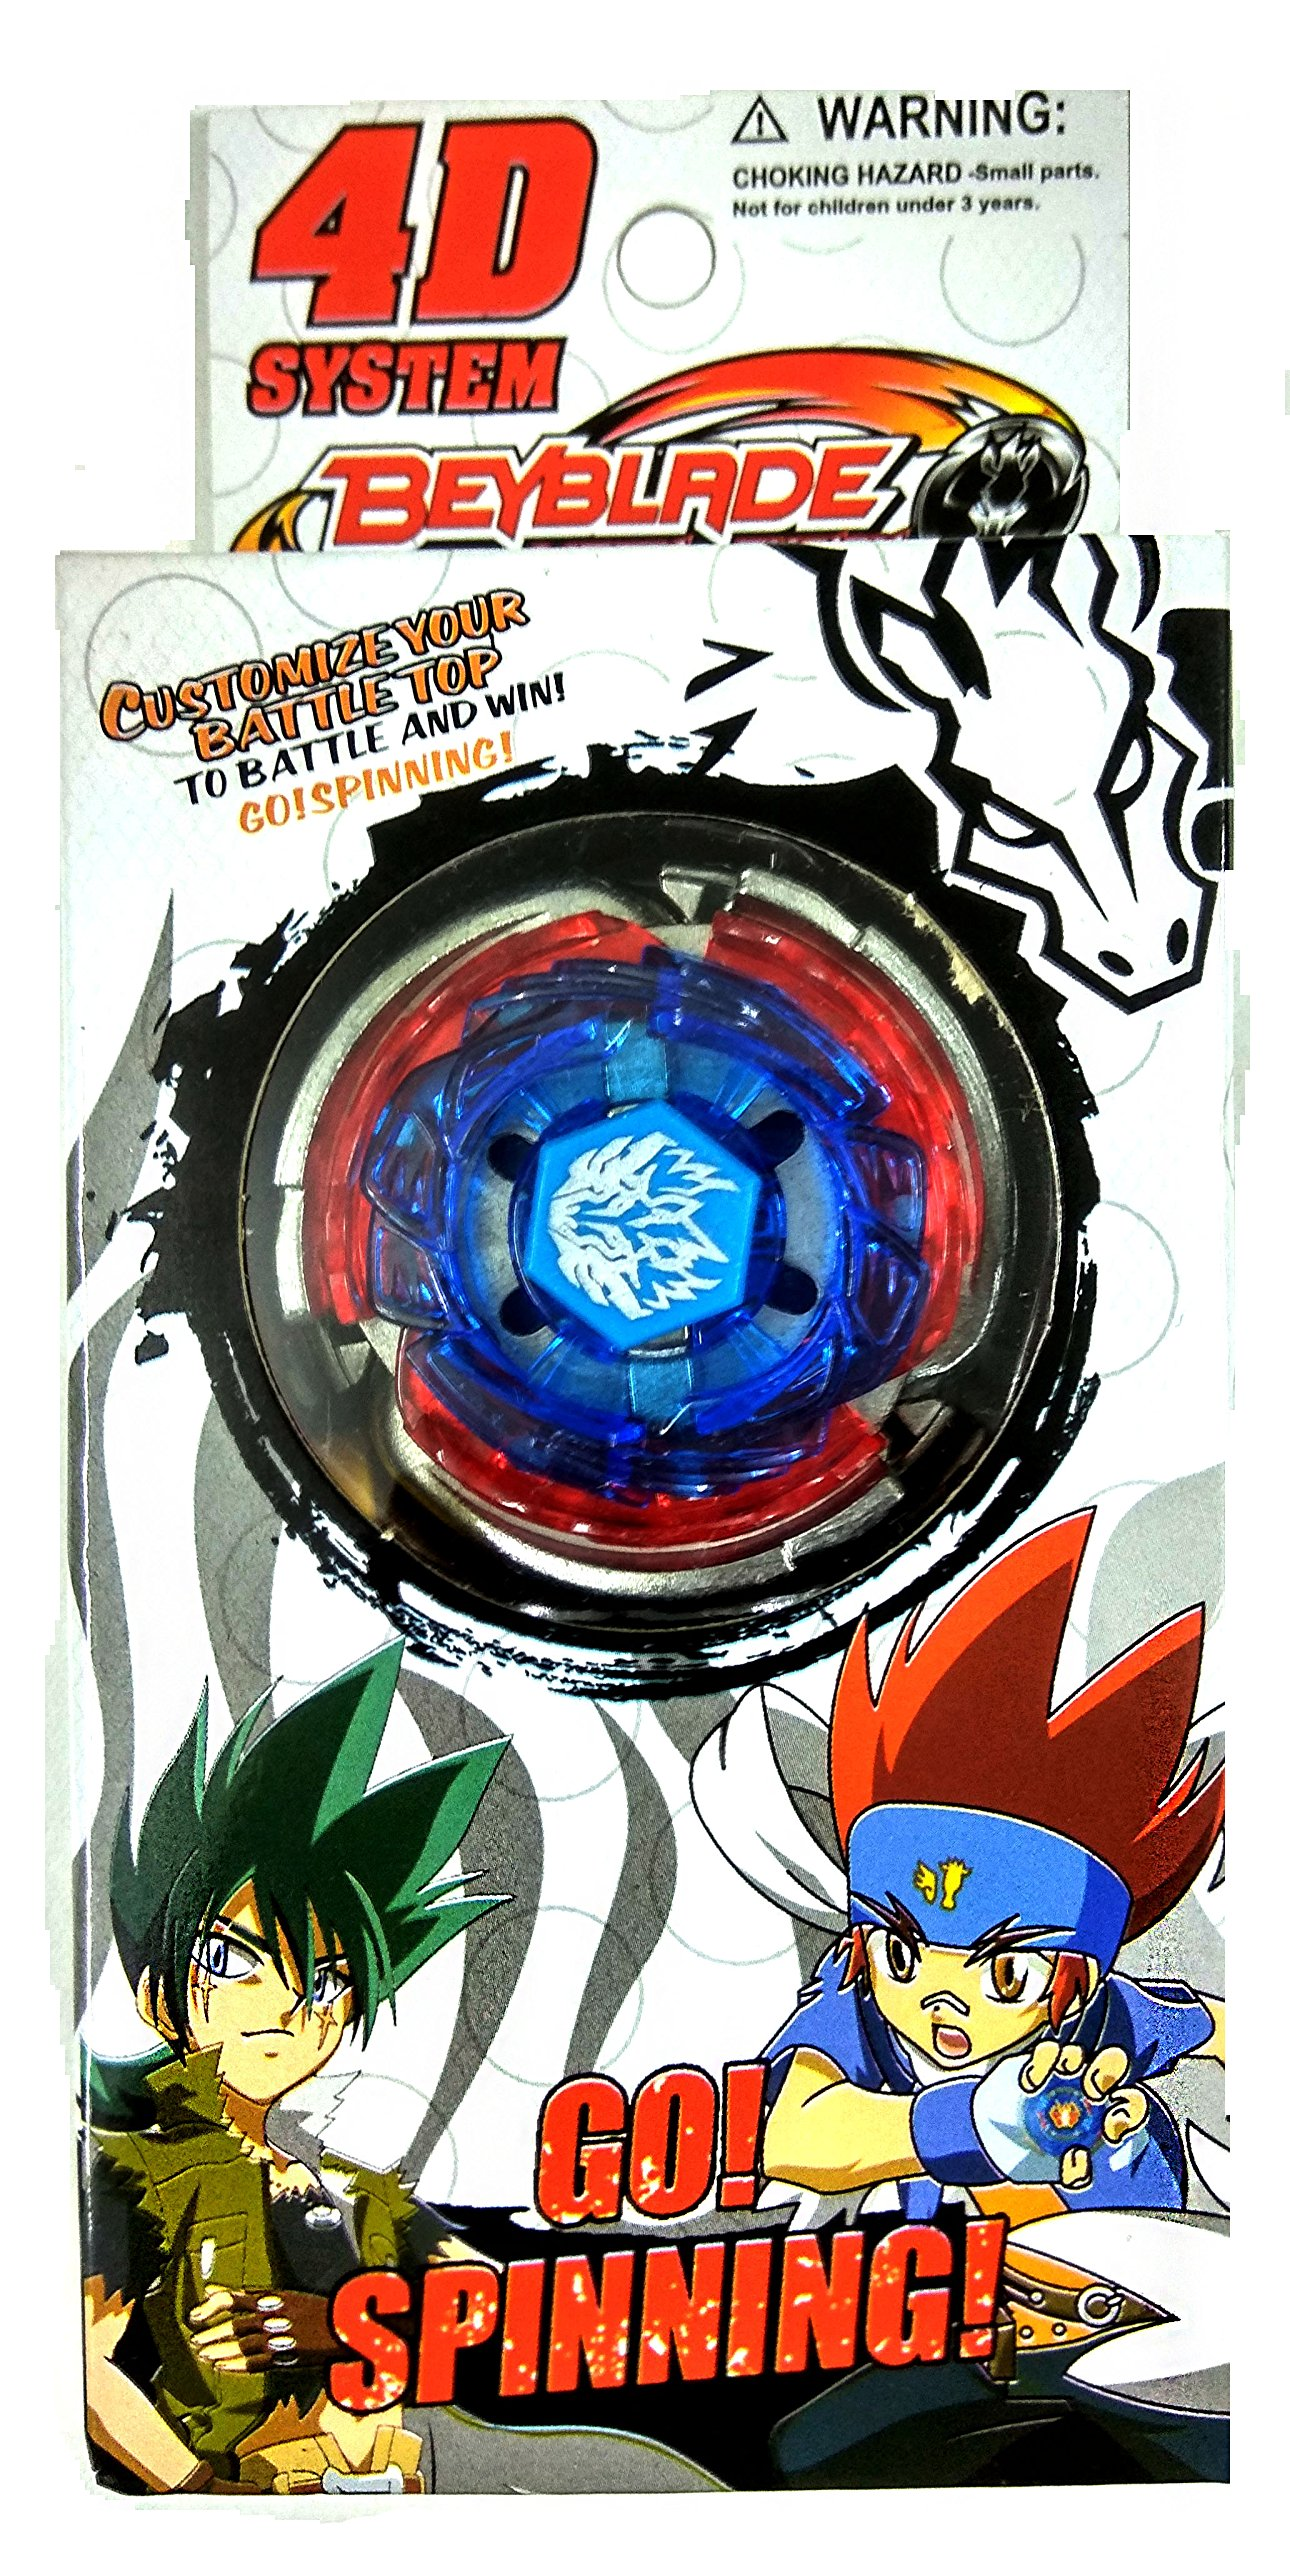 Beyblade Burst 4D System Single Bey Playset Character Pegasus (Multicolour) product image